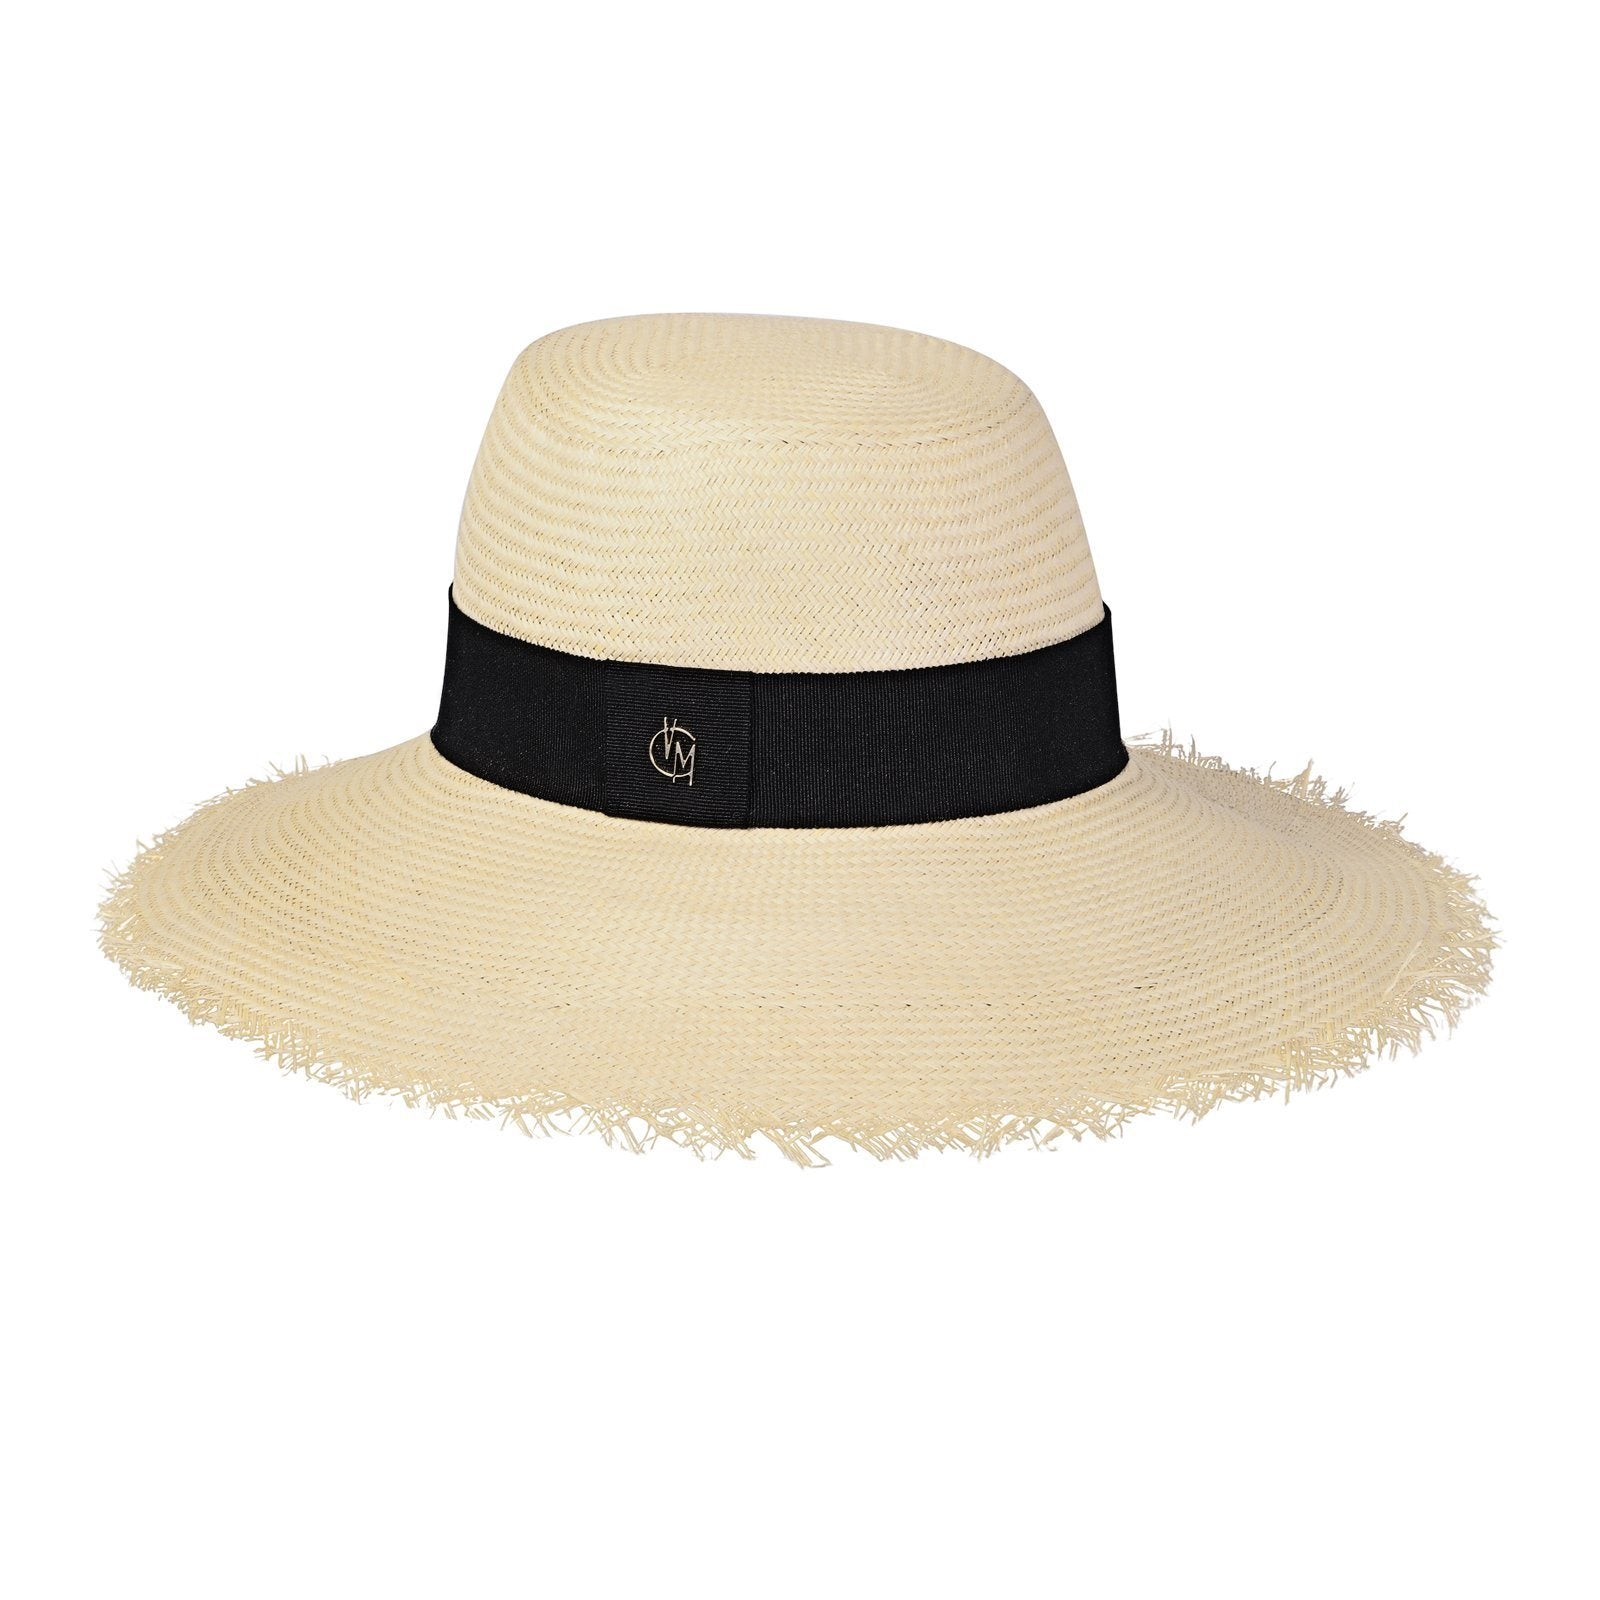 The Steffi - Straw Hat